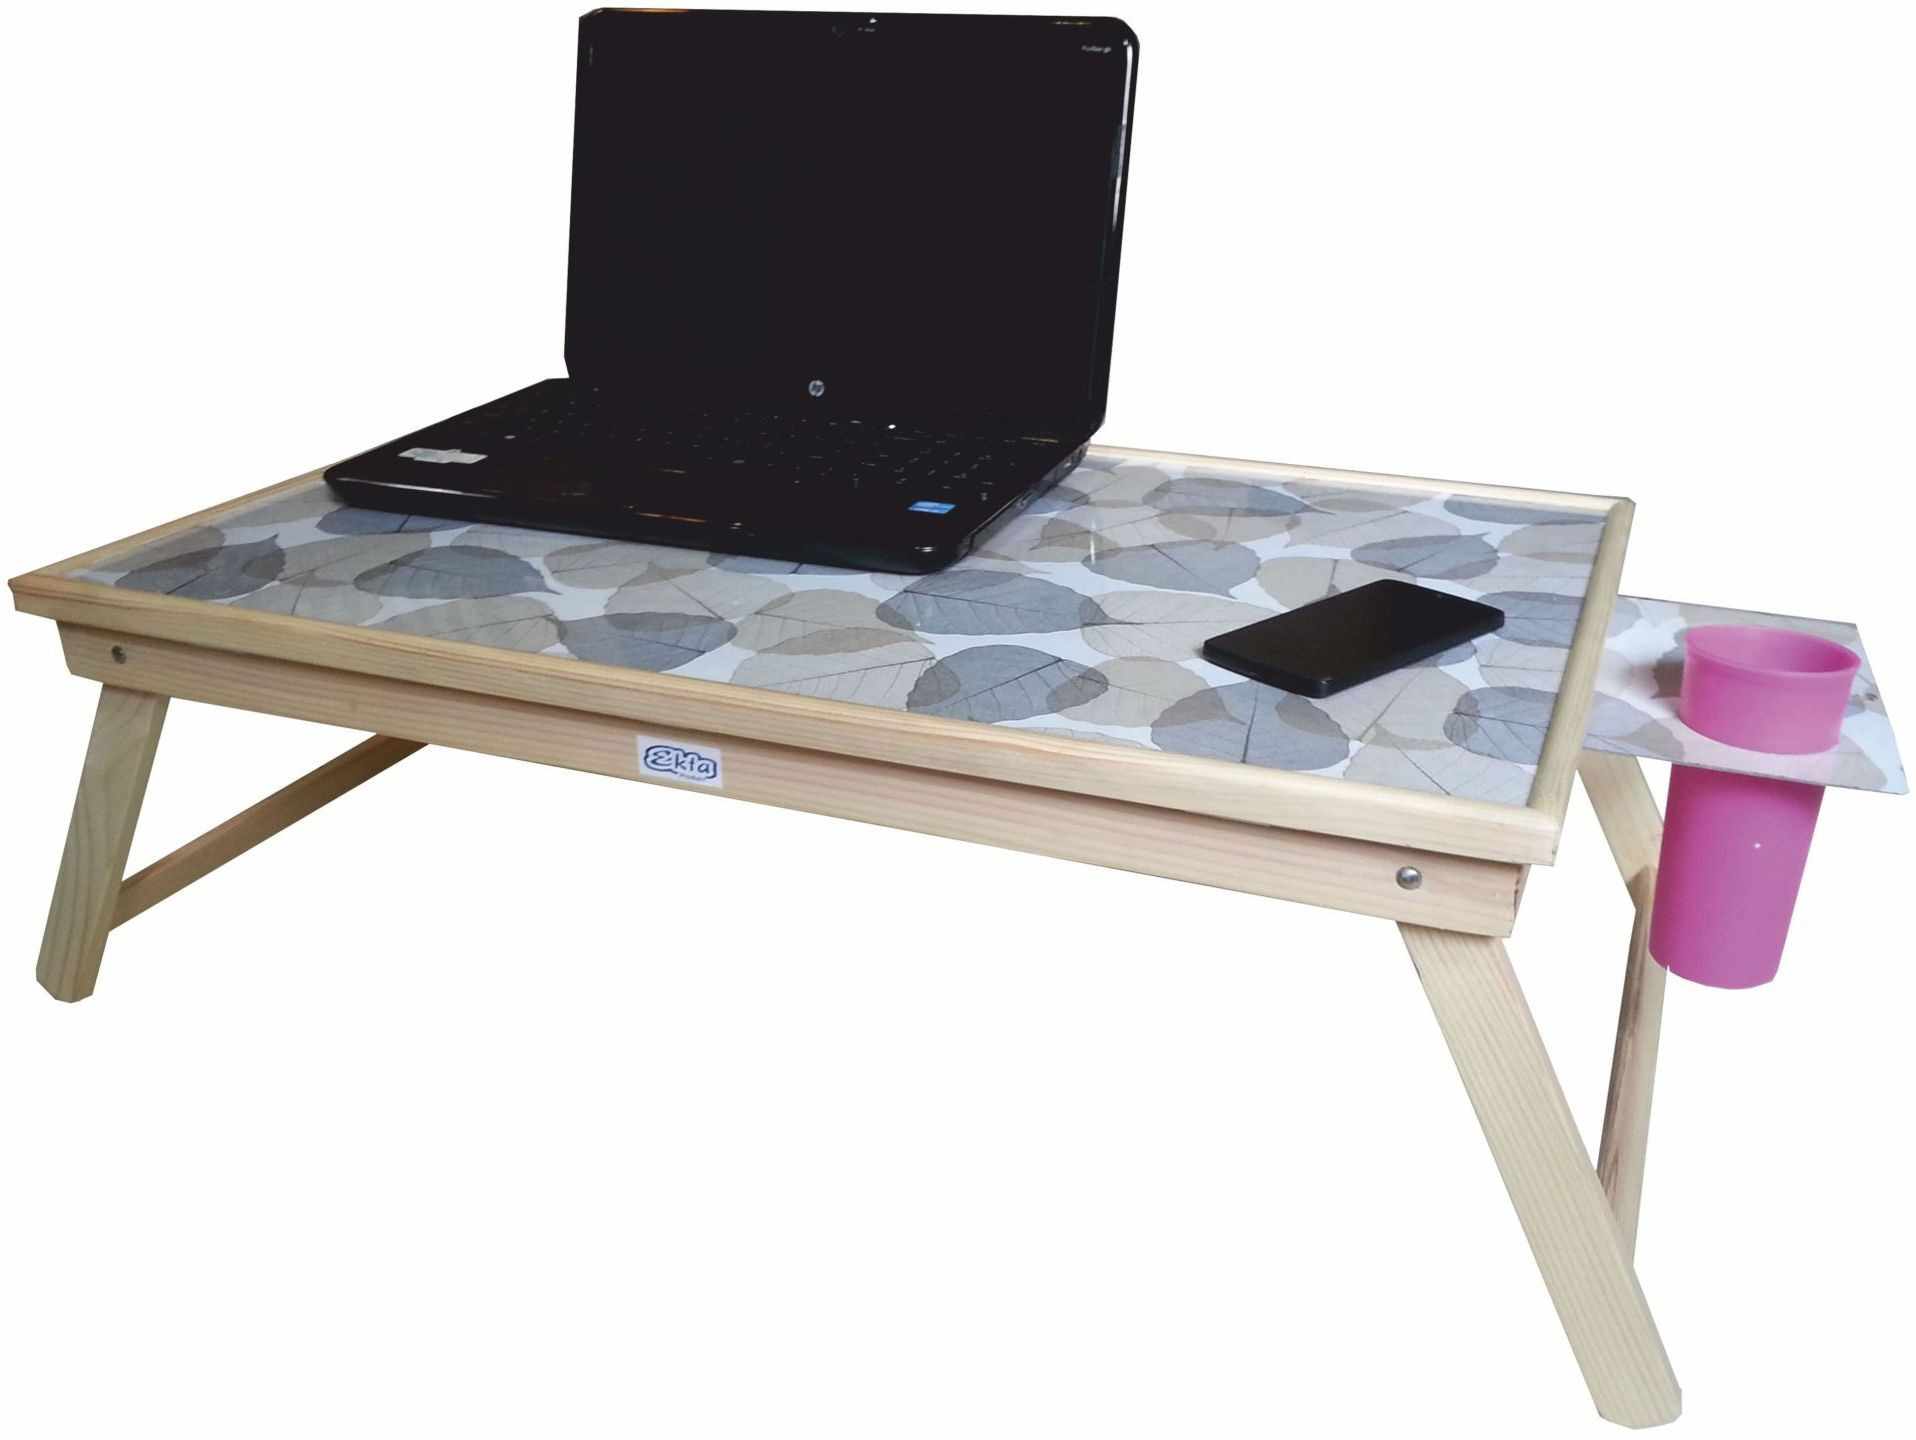 View Ekta Product Engineered Wood Portable Laptop Table(Finish Color - Light Oak) Furniture (Ekta Product)